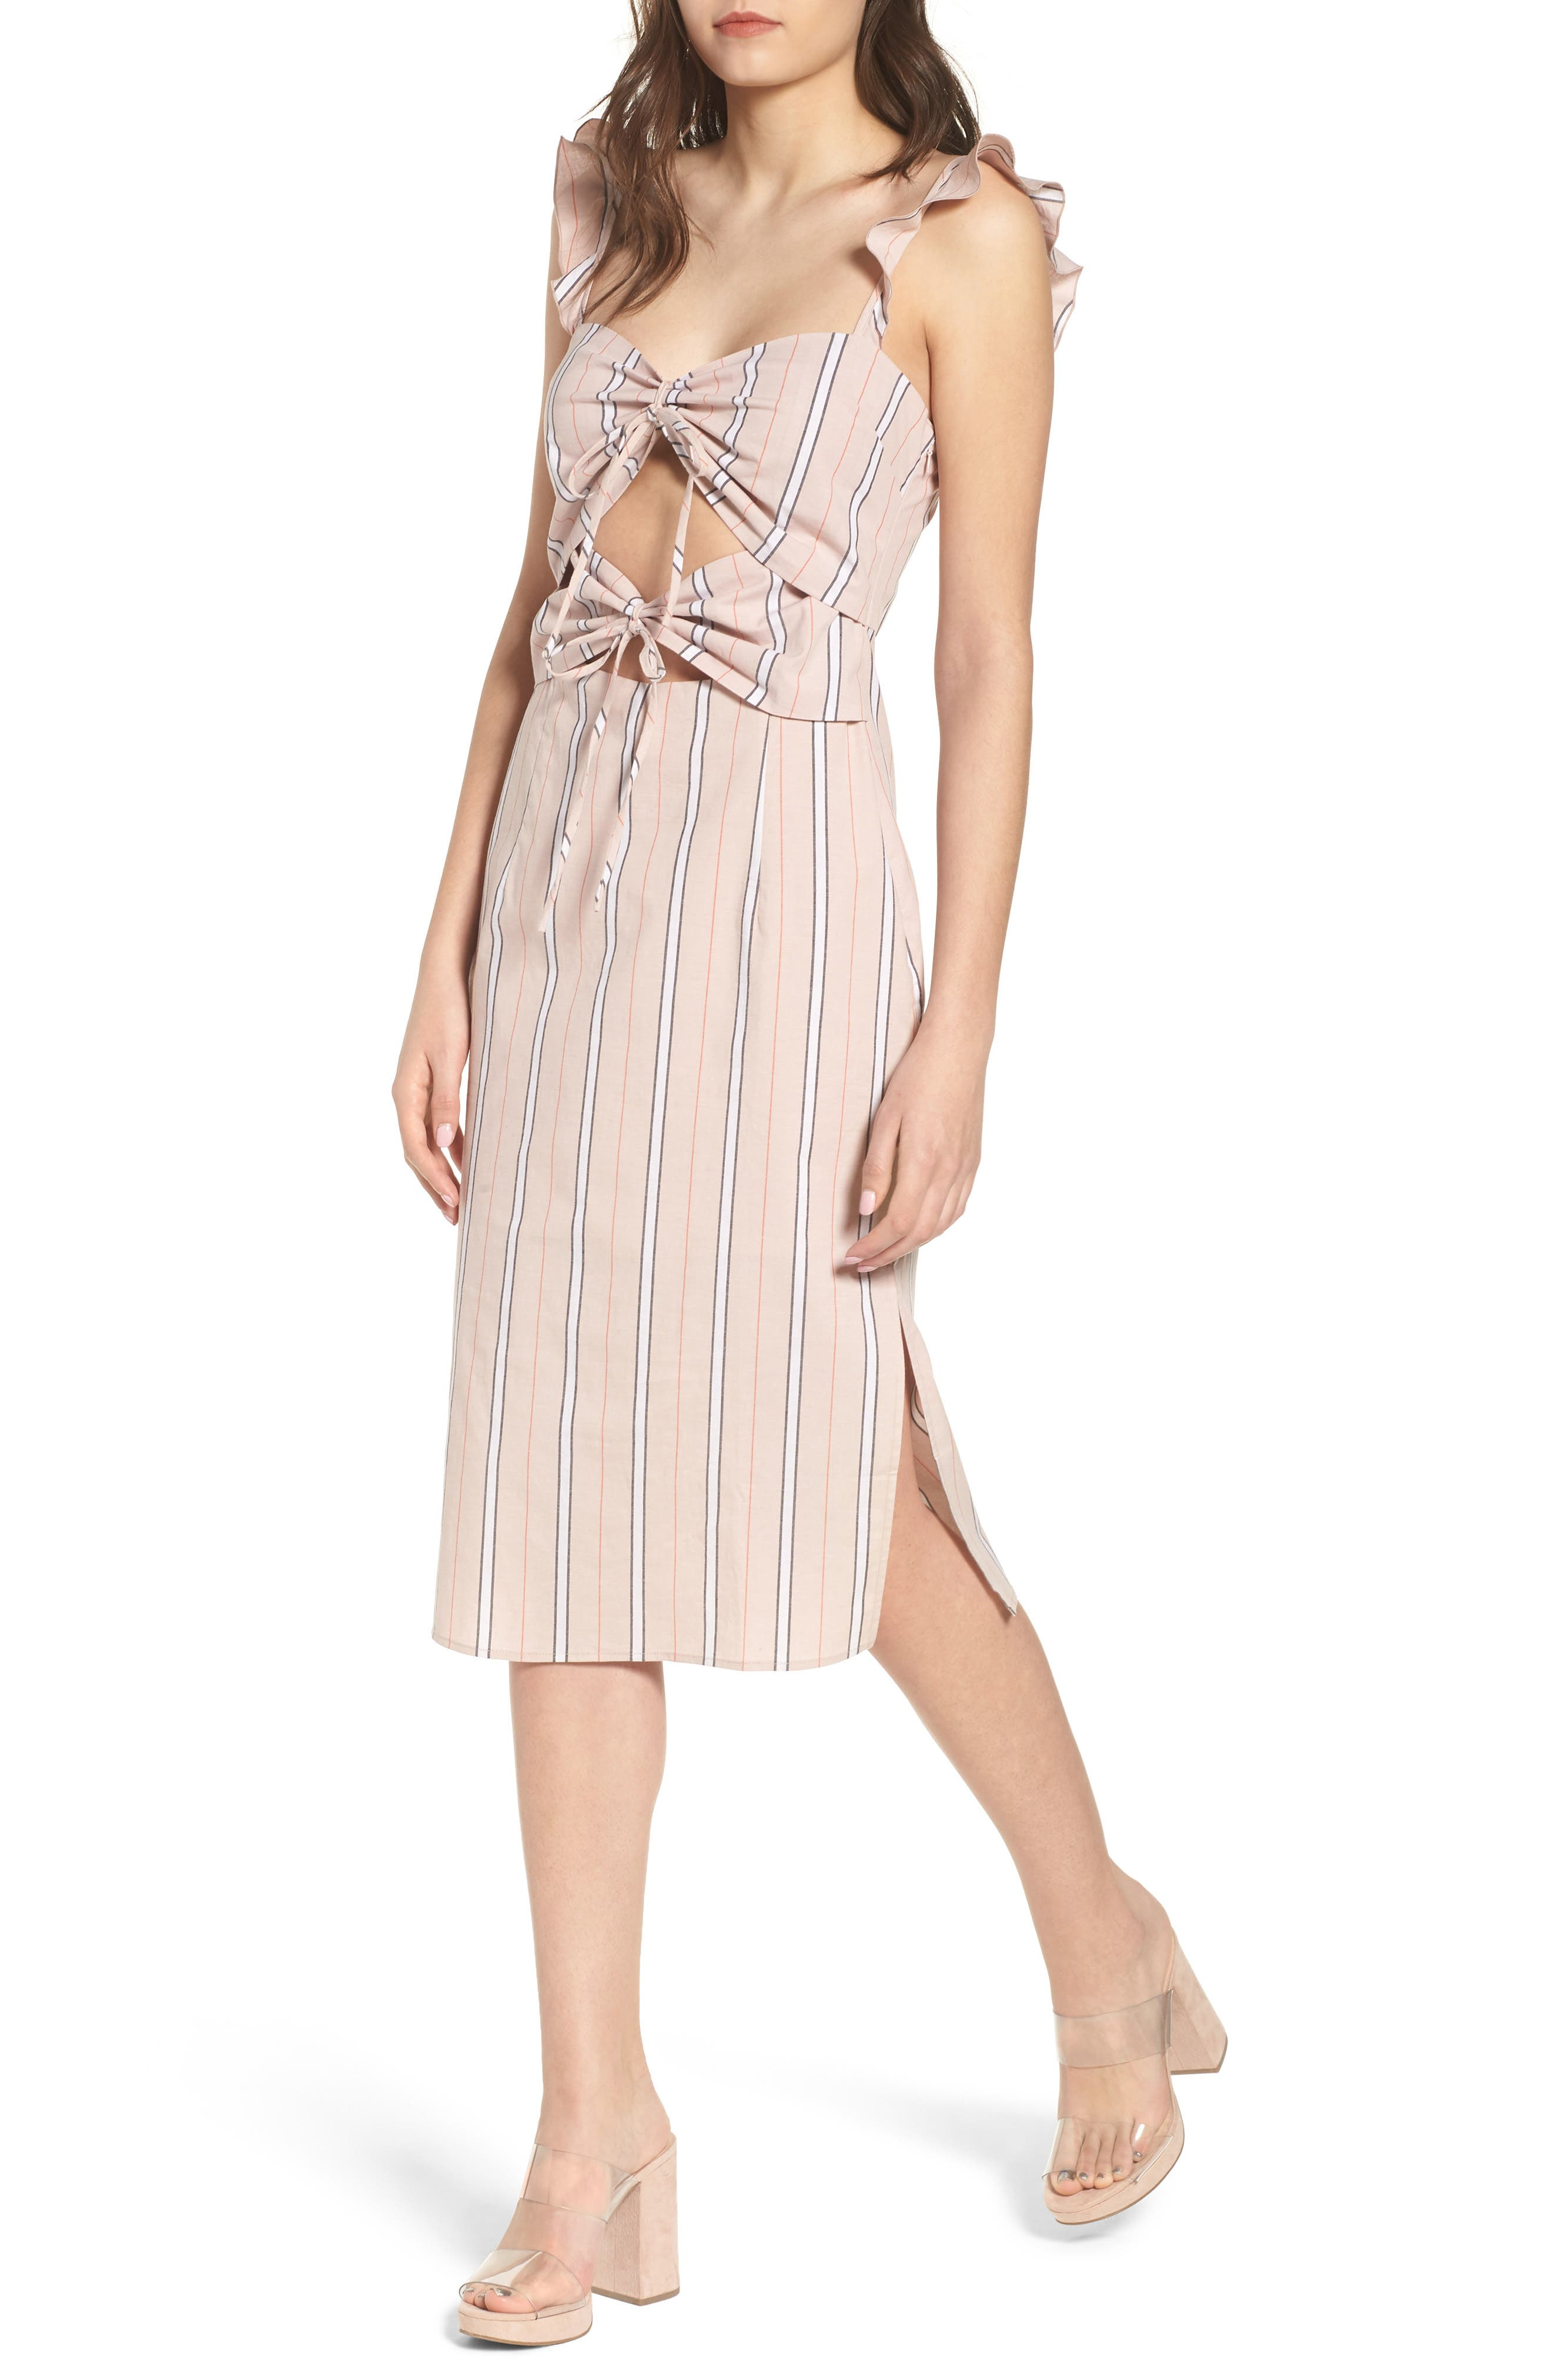 Verona Cutout Midi Dress,                             Main thumbnail 1, color,                             Coral Stripe